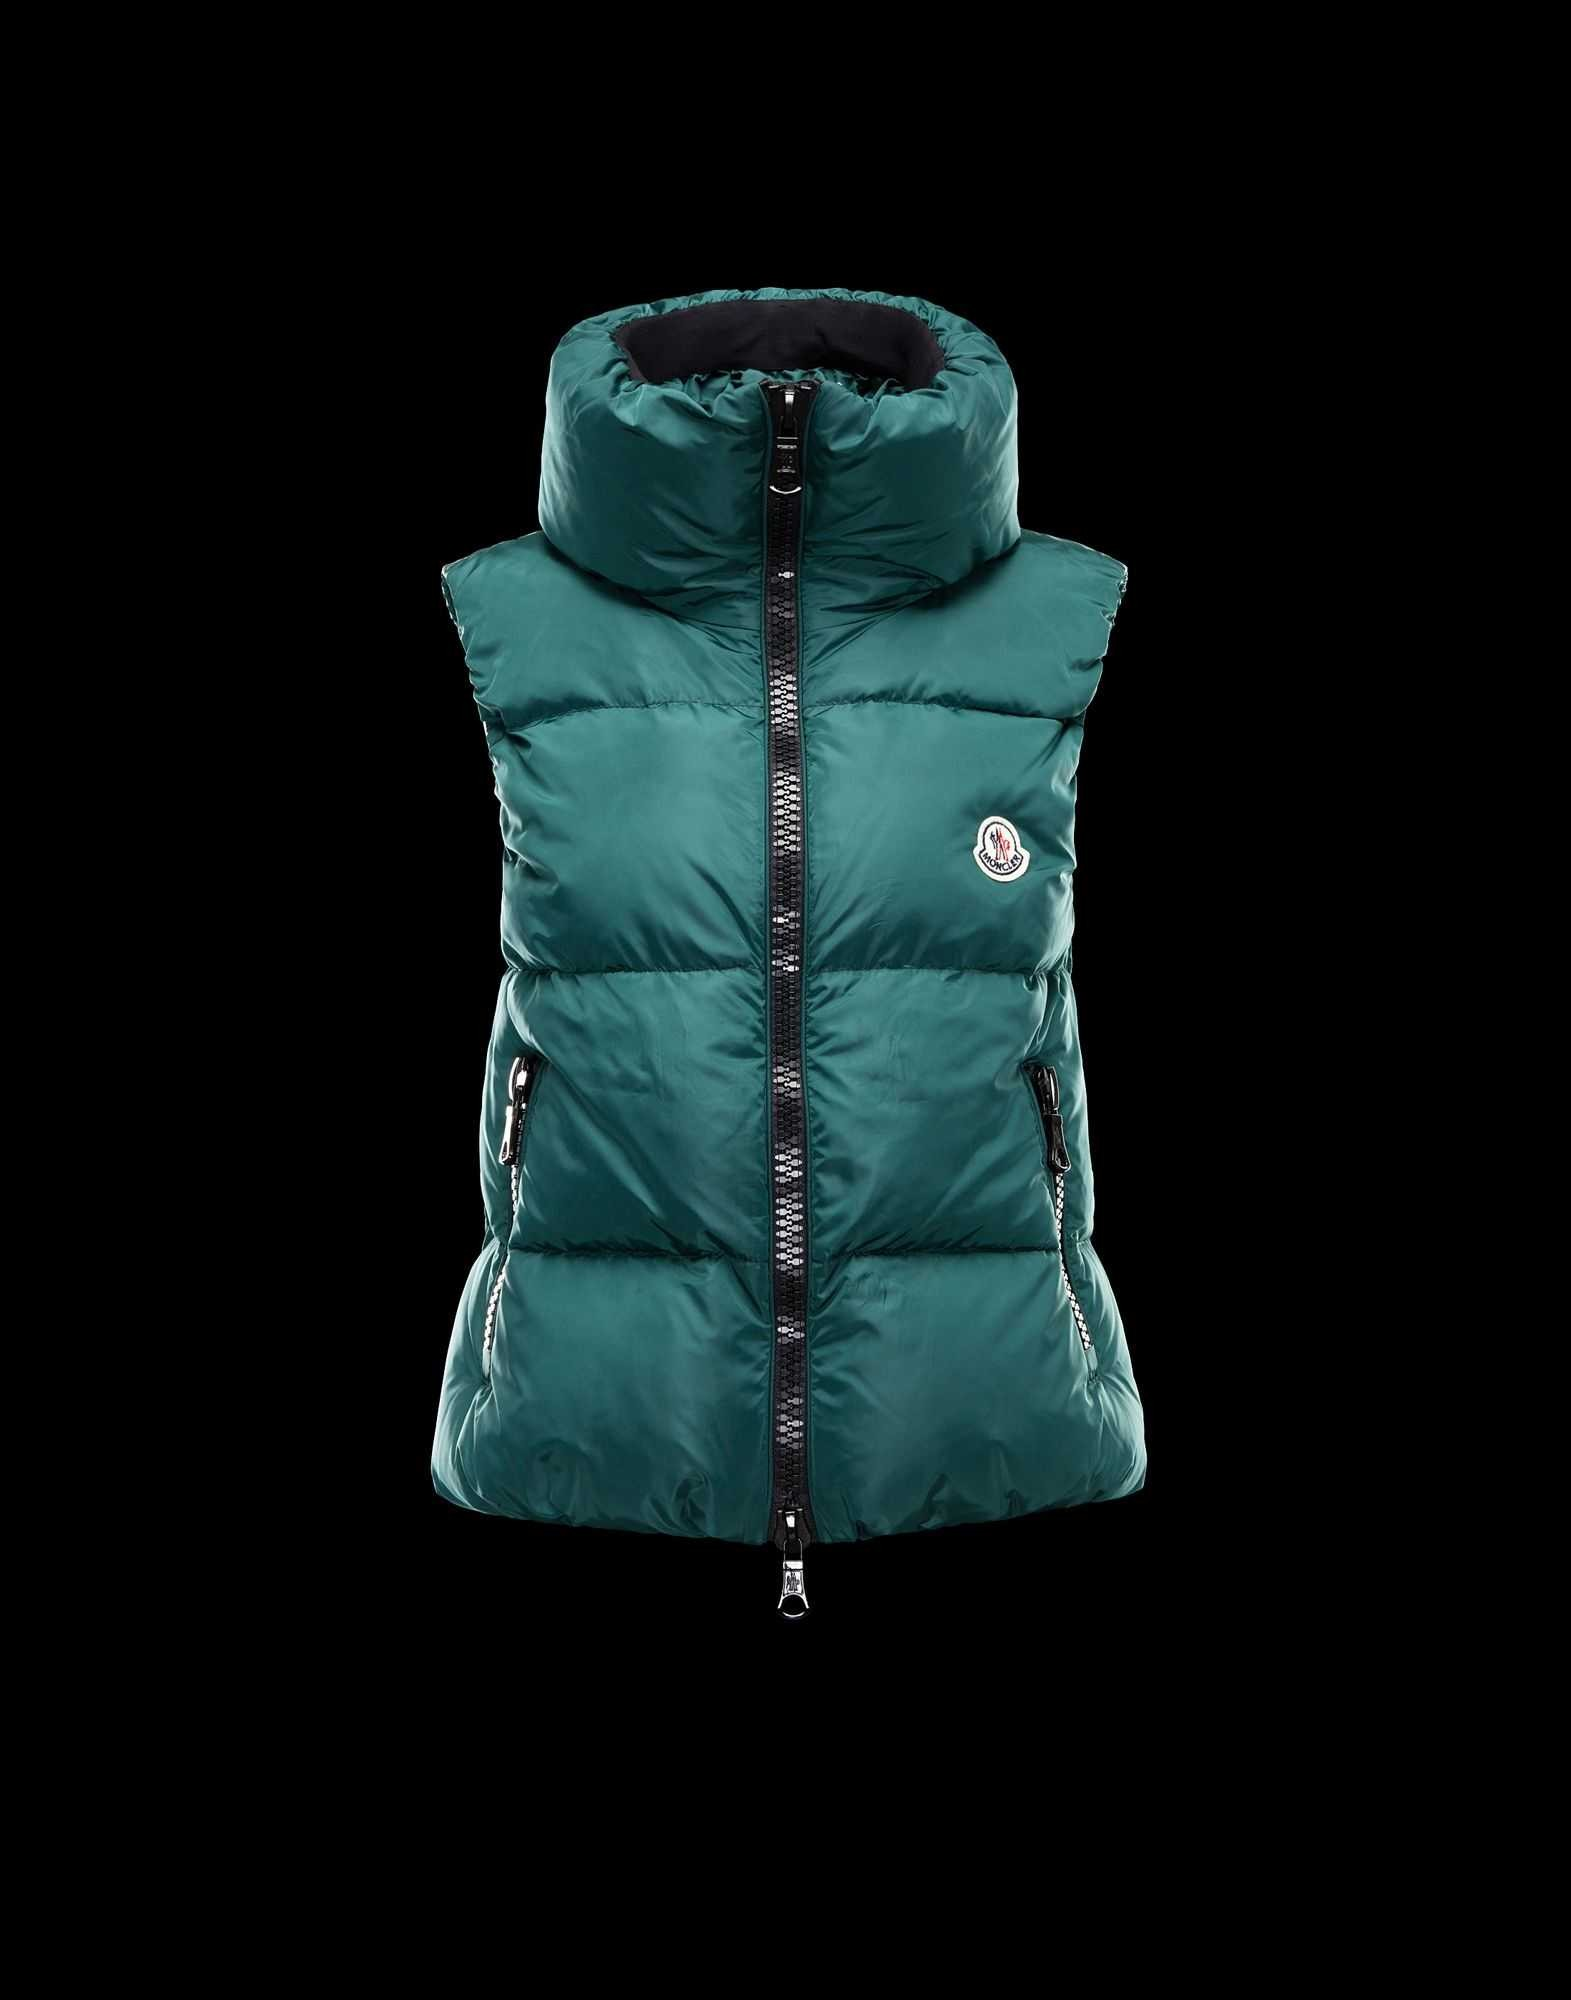 c2223695a 2014 New! Moncler PETY Top Quality Womens Down Vests Green – Cheap ...